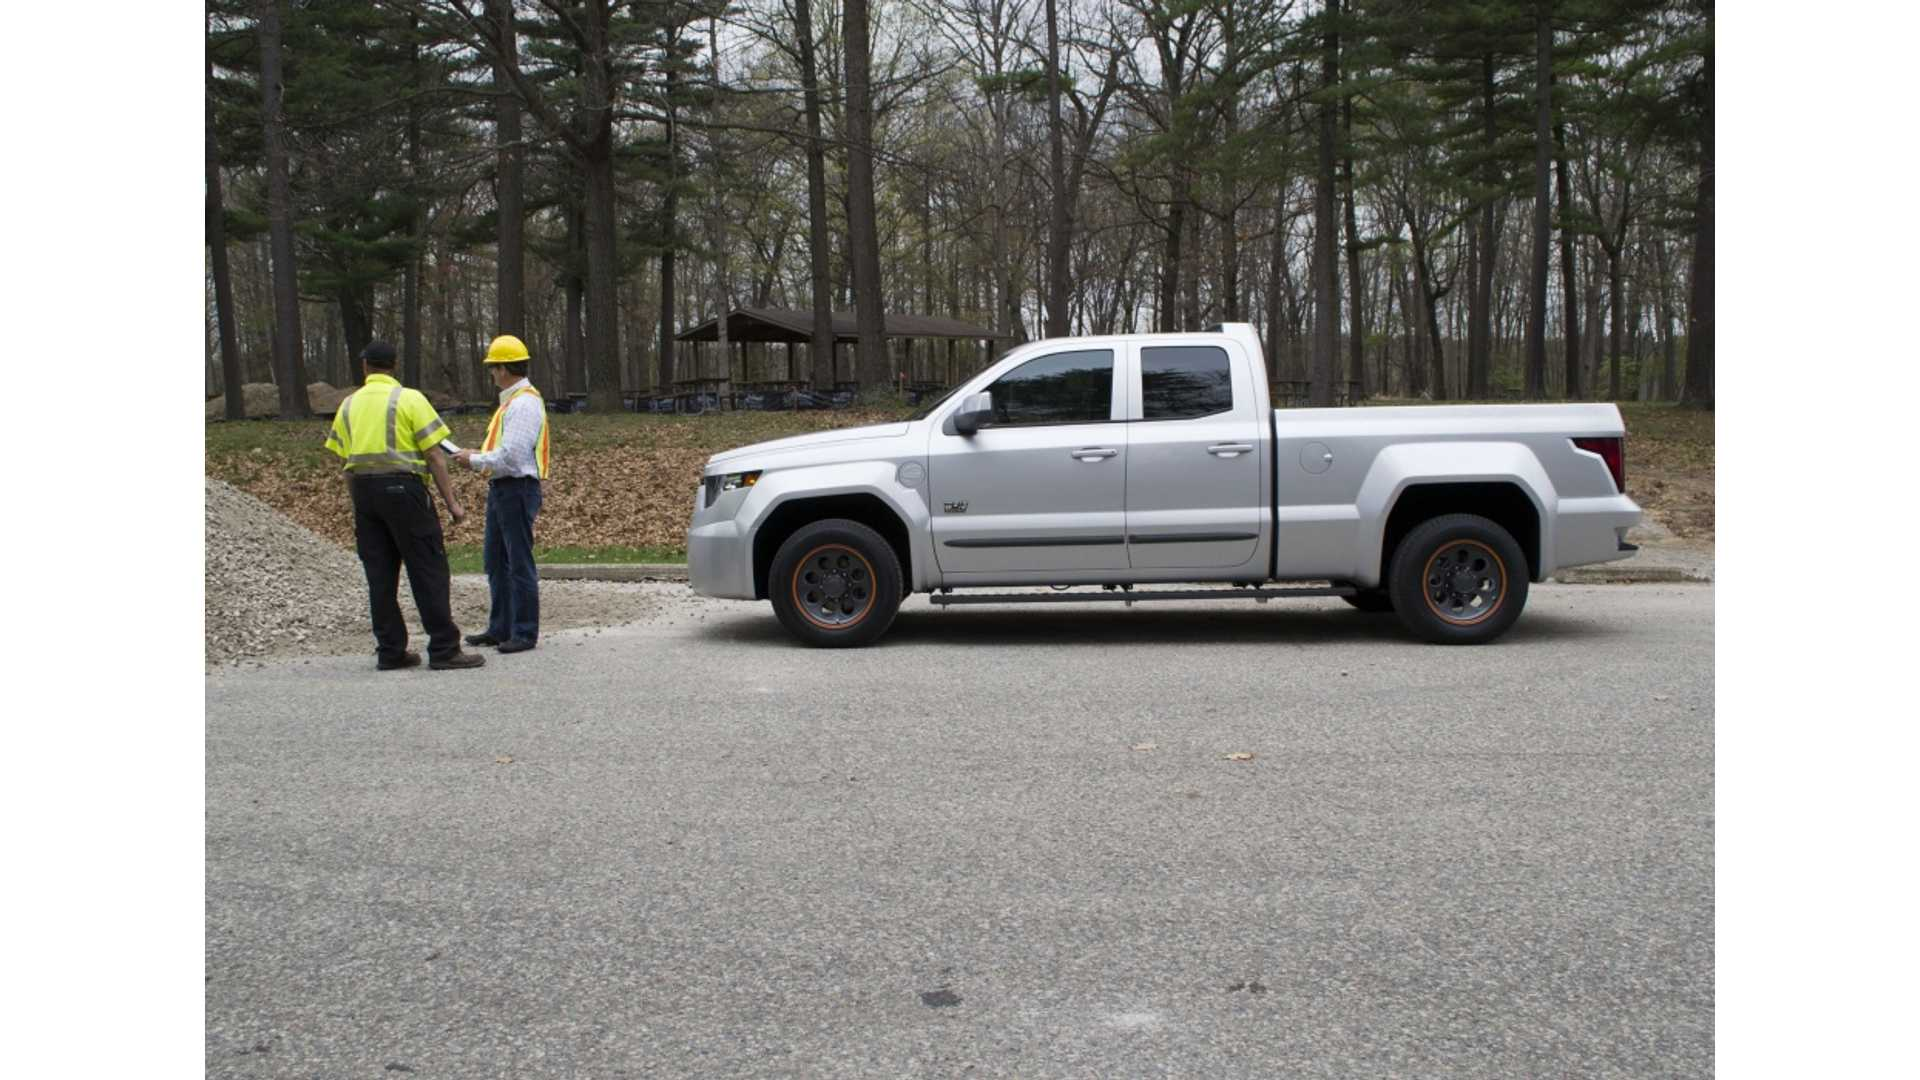 Workhorse Opens W 15 Range Extended Truck Orders To Public 0 60 Mph In 5 Seconds